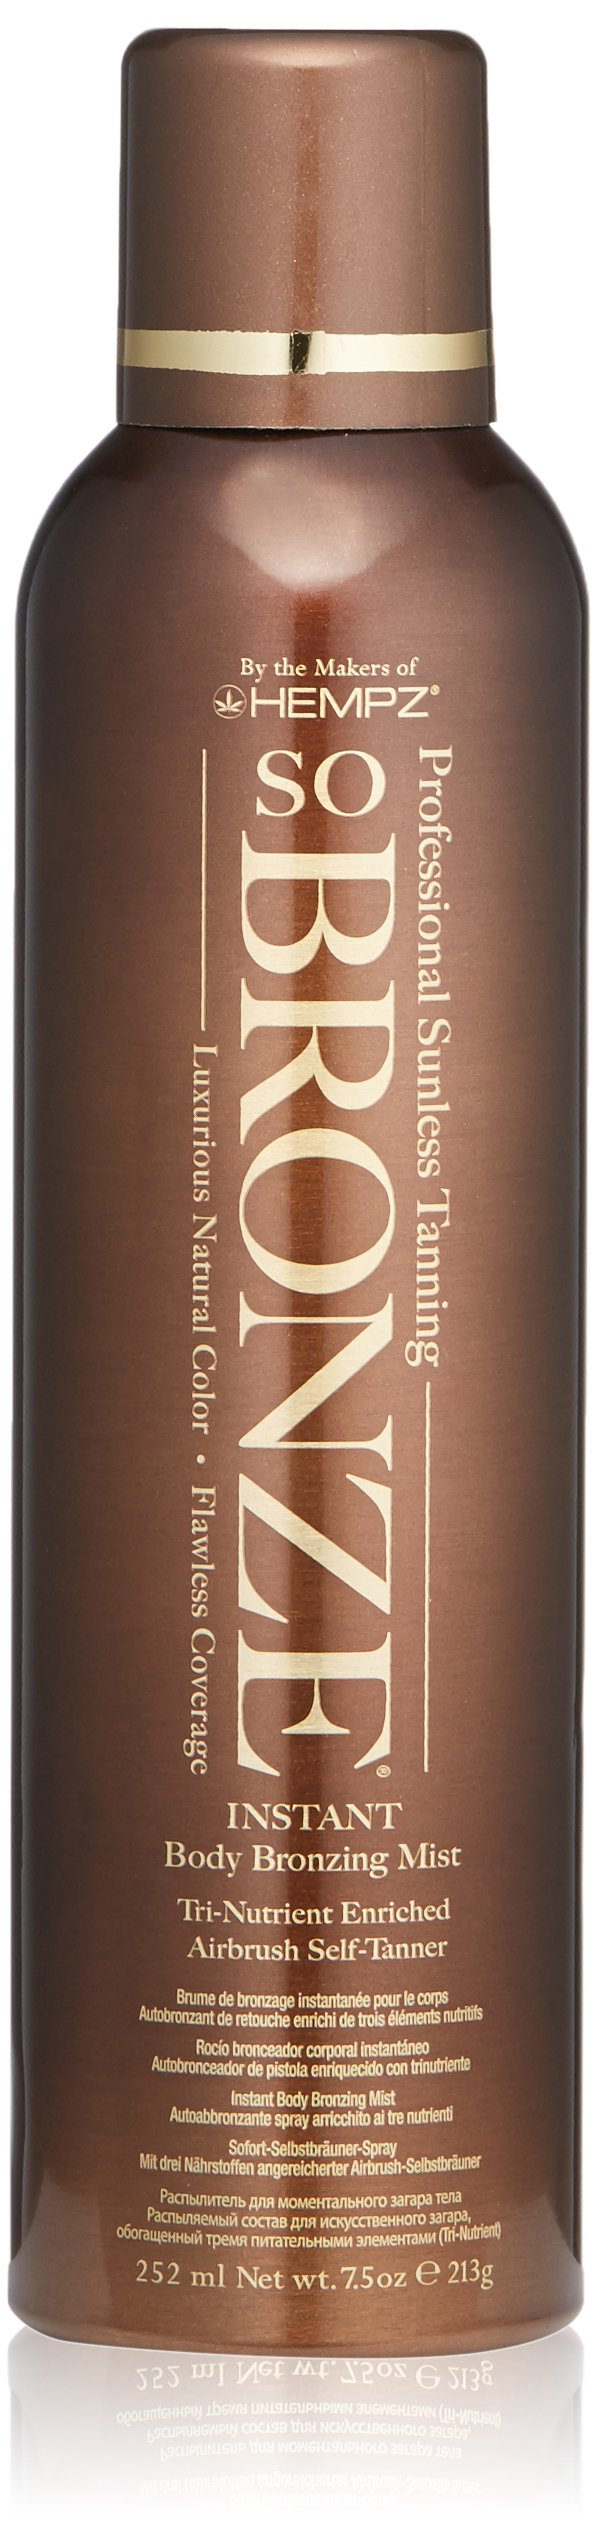 Hempz So Bronze Sunless Airbrush Tanning Spray, 7.5 Fluid Ounce